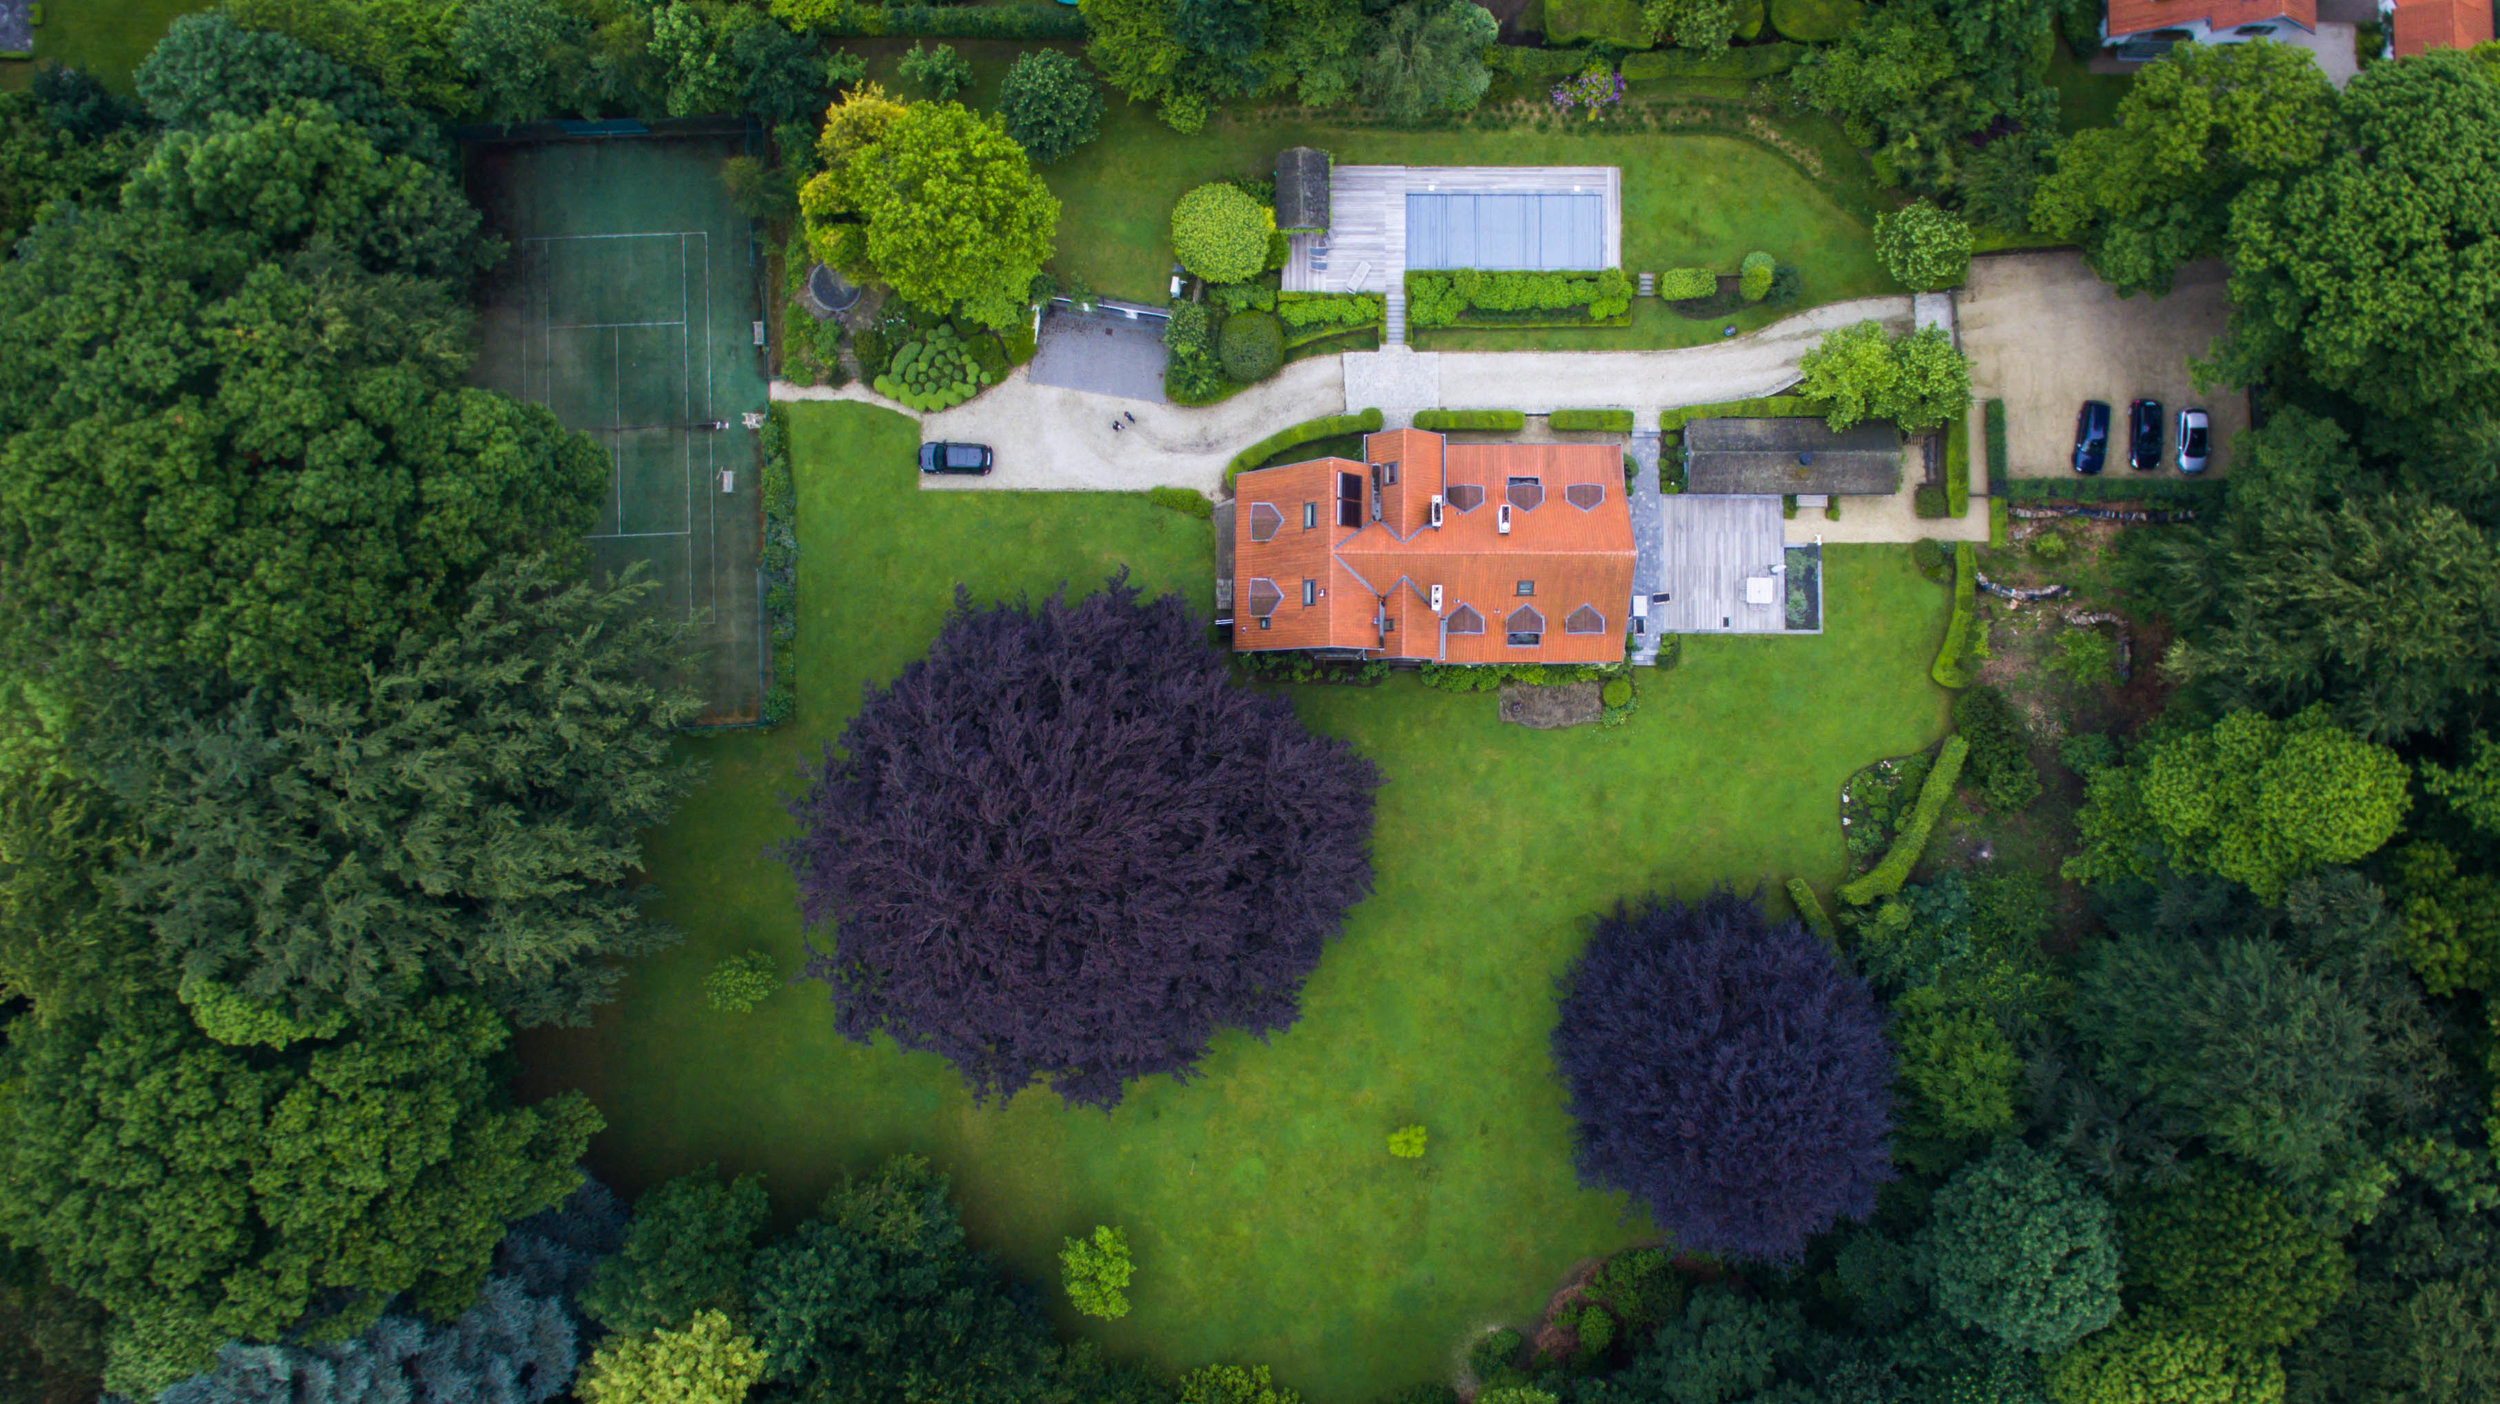 NOT INCLUDED: We also utilize satellite imagery to capture a view of your roof and property for the inspection. You are not expected to provide this for loss control assessment but it is included.